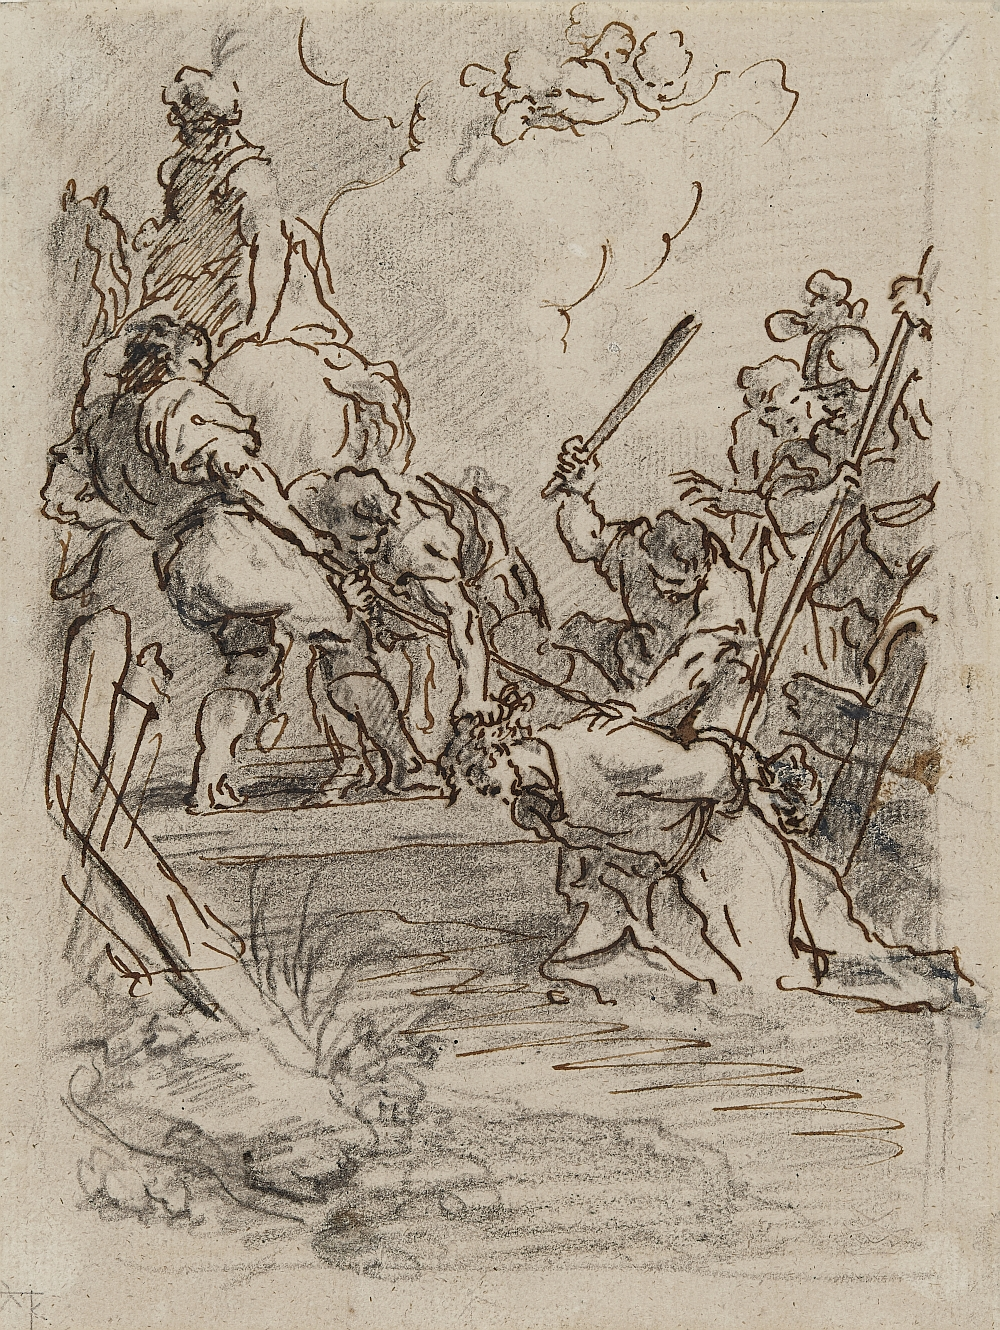 Christ is led through the Stream of Kedron, Martin Johann Schmidt (called Kremserschmidt), black chalk, pen and brown ink on paper, inv. no. RO 1071; composition design for the Garsten Lenten wall hangings, 1777